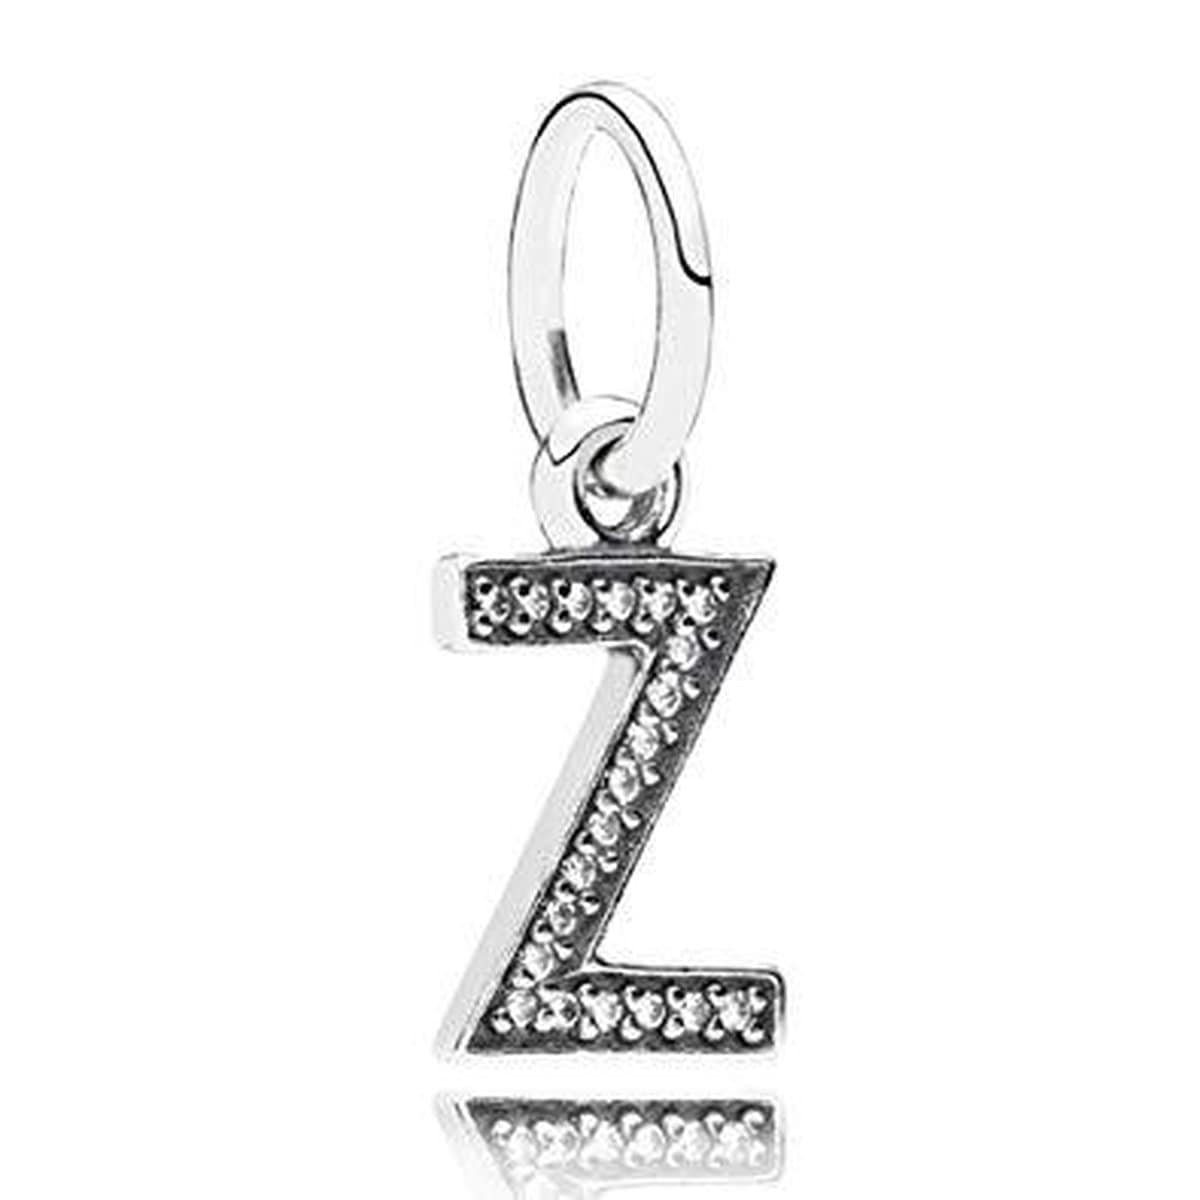 Letter Z Clear Cubic Zirconia Charm - 791338CZ-Pandora-Renee Taylor Gallery